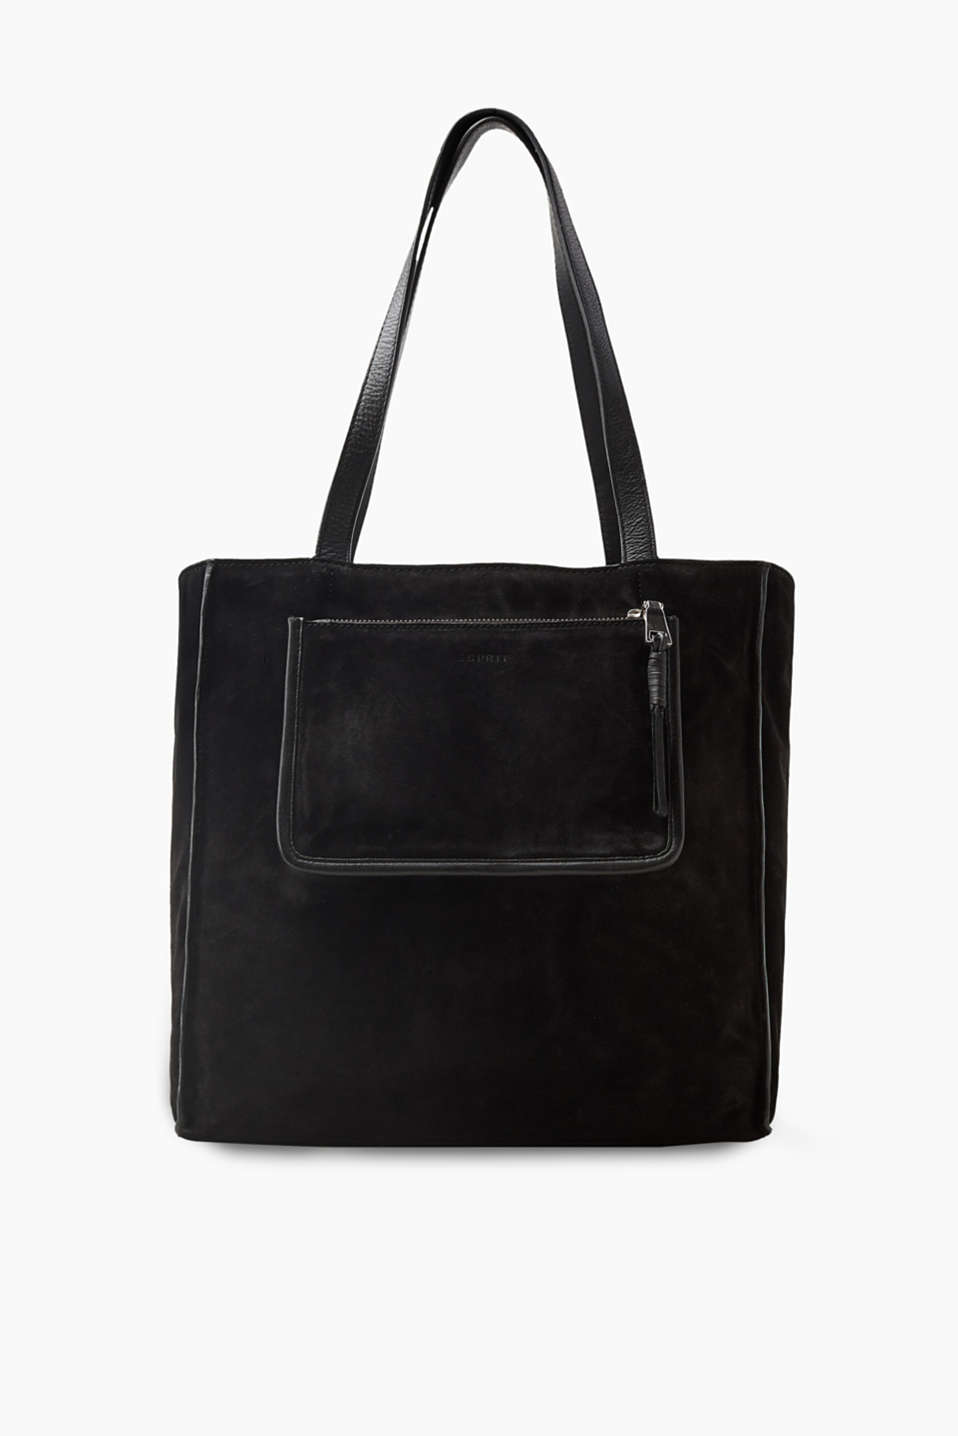 This shoulder bag with a distinctive zip pocket in high-quality suede is an everyday favourite